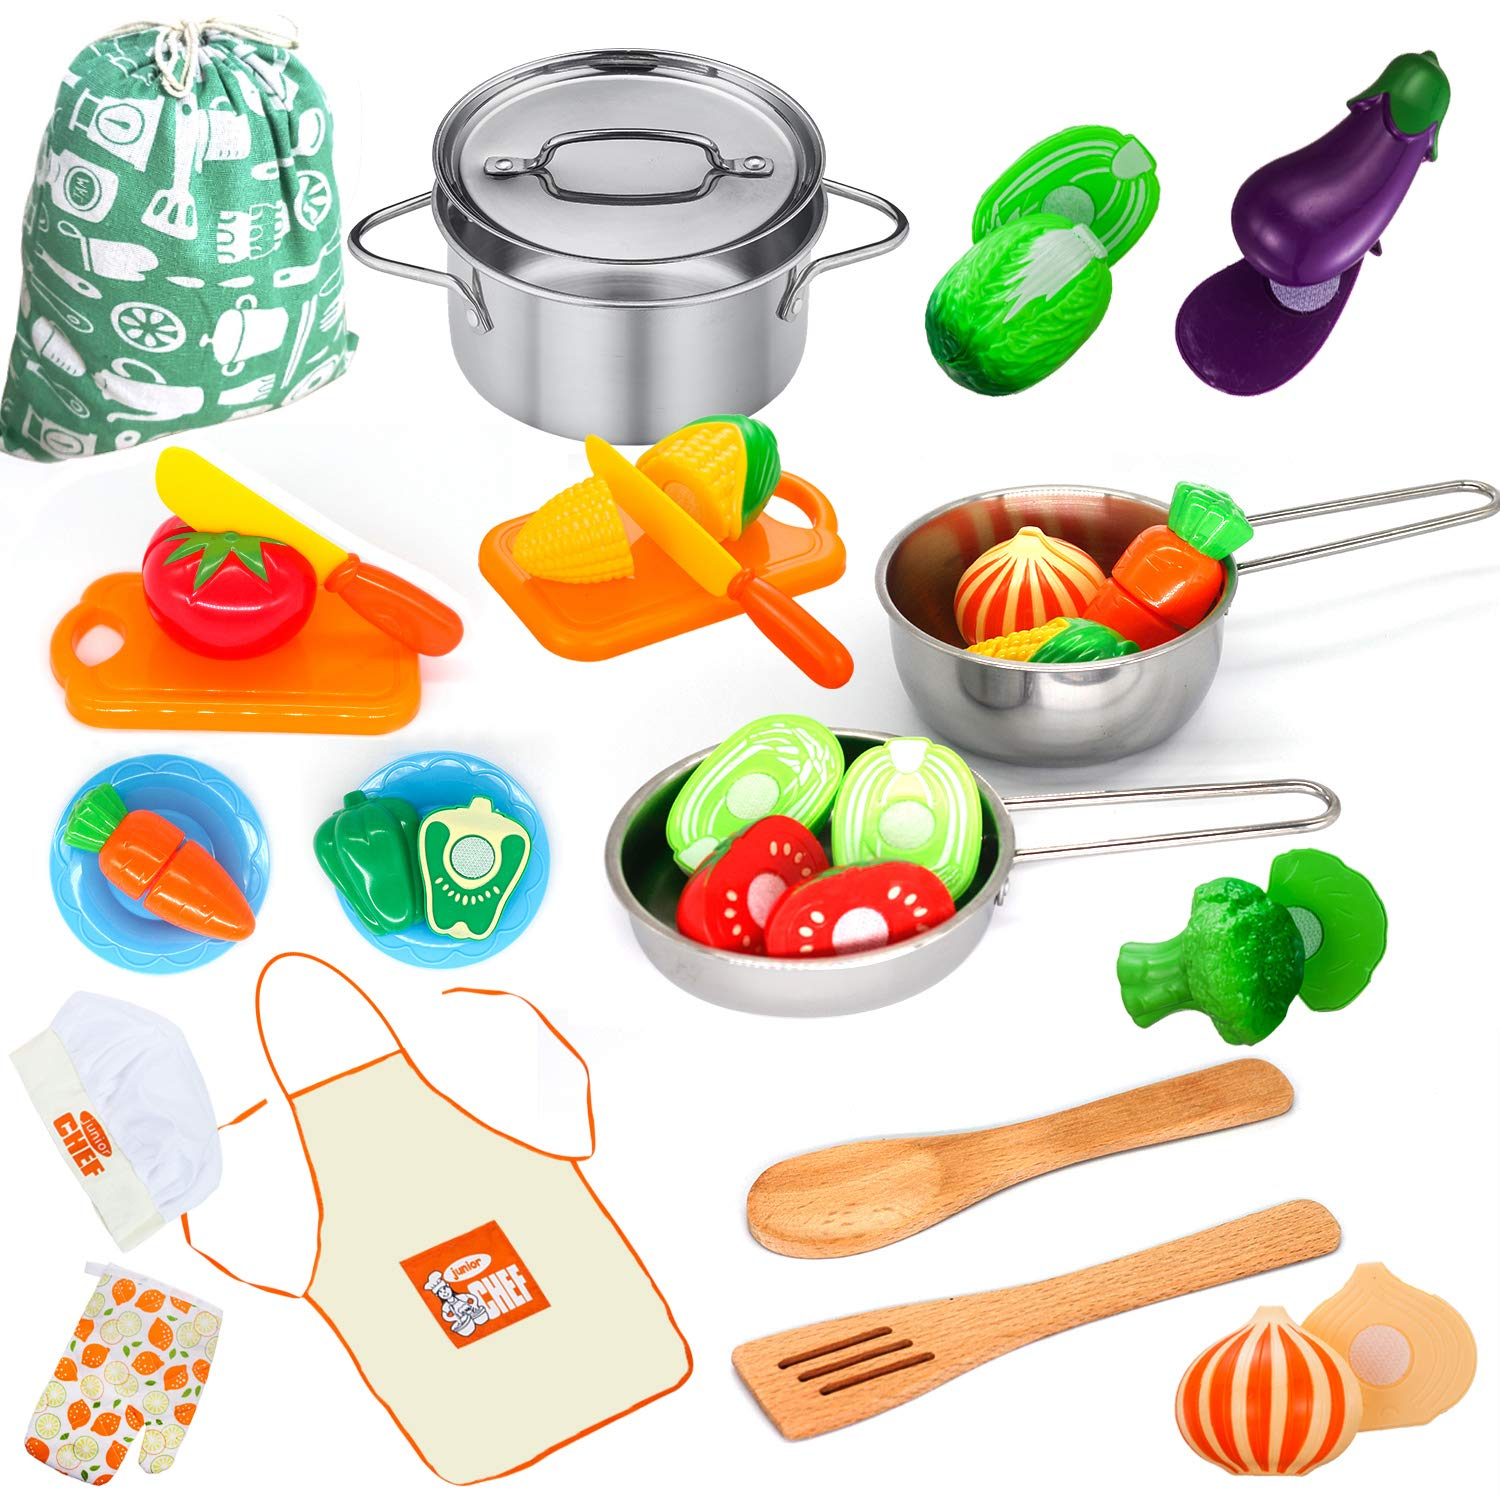 Kitchen Playset Accessories Toys - Stainless Steel Cookware Pots and Pans Set, Cooking Utensils, Apron, Chef Hat, and Cutting Play Food for Kids, Toddler and Boys Girls Educational Learning Tool by KRATO